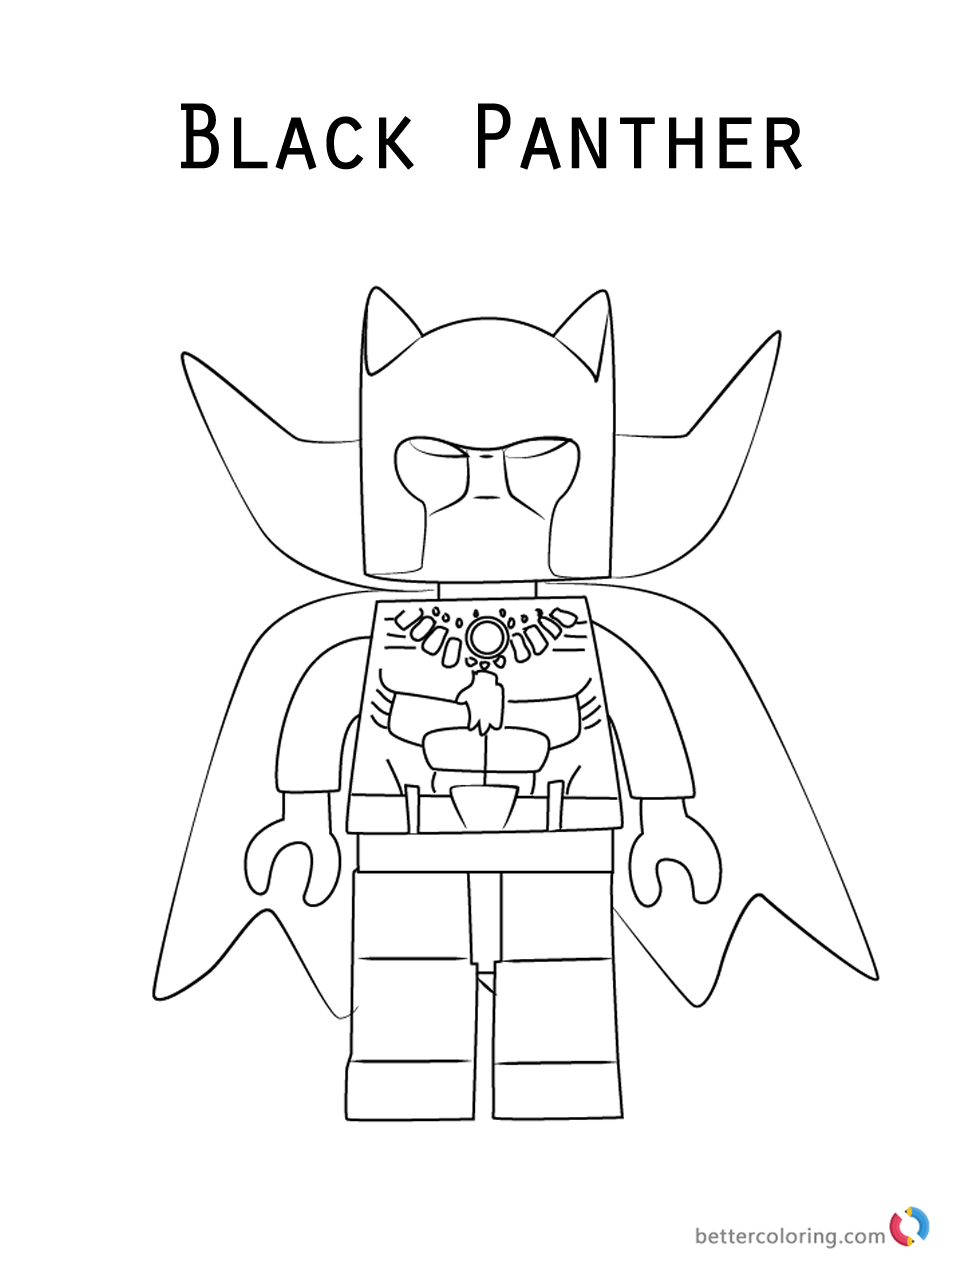 Free Coloring Pages Download : Black Panther Lego Coloring Pages Free  Printable Coloring Pages Of Black